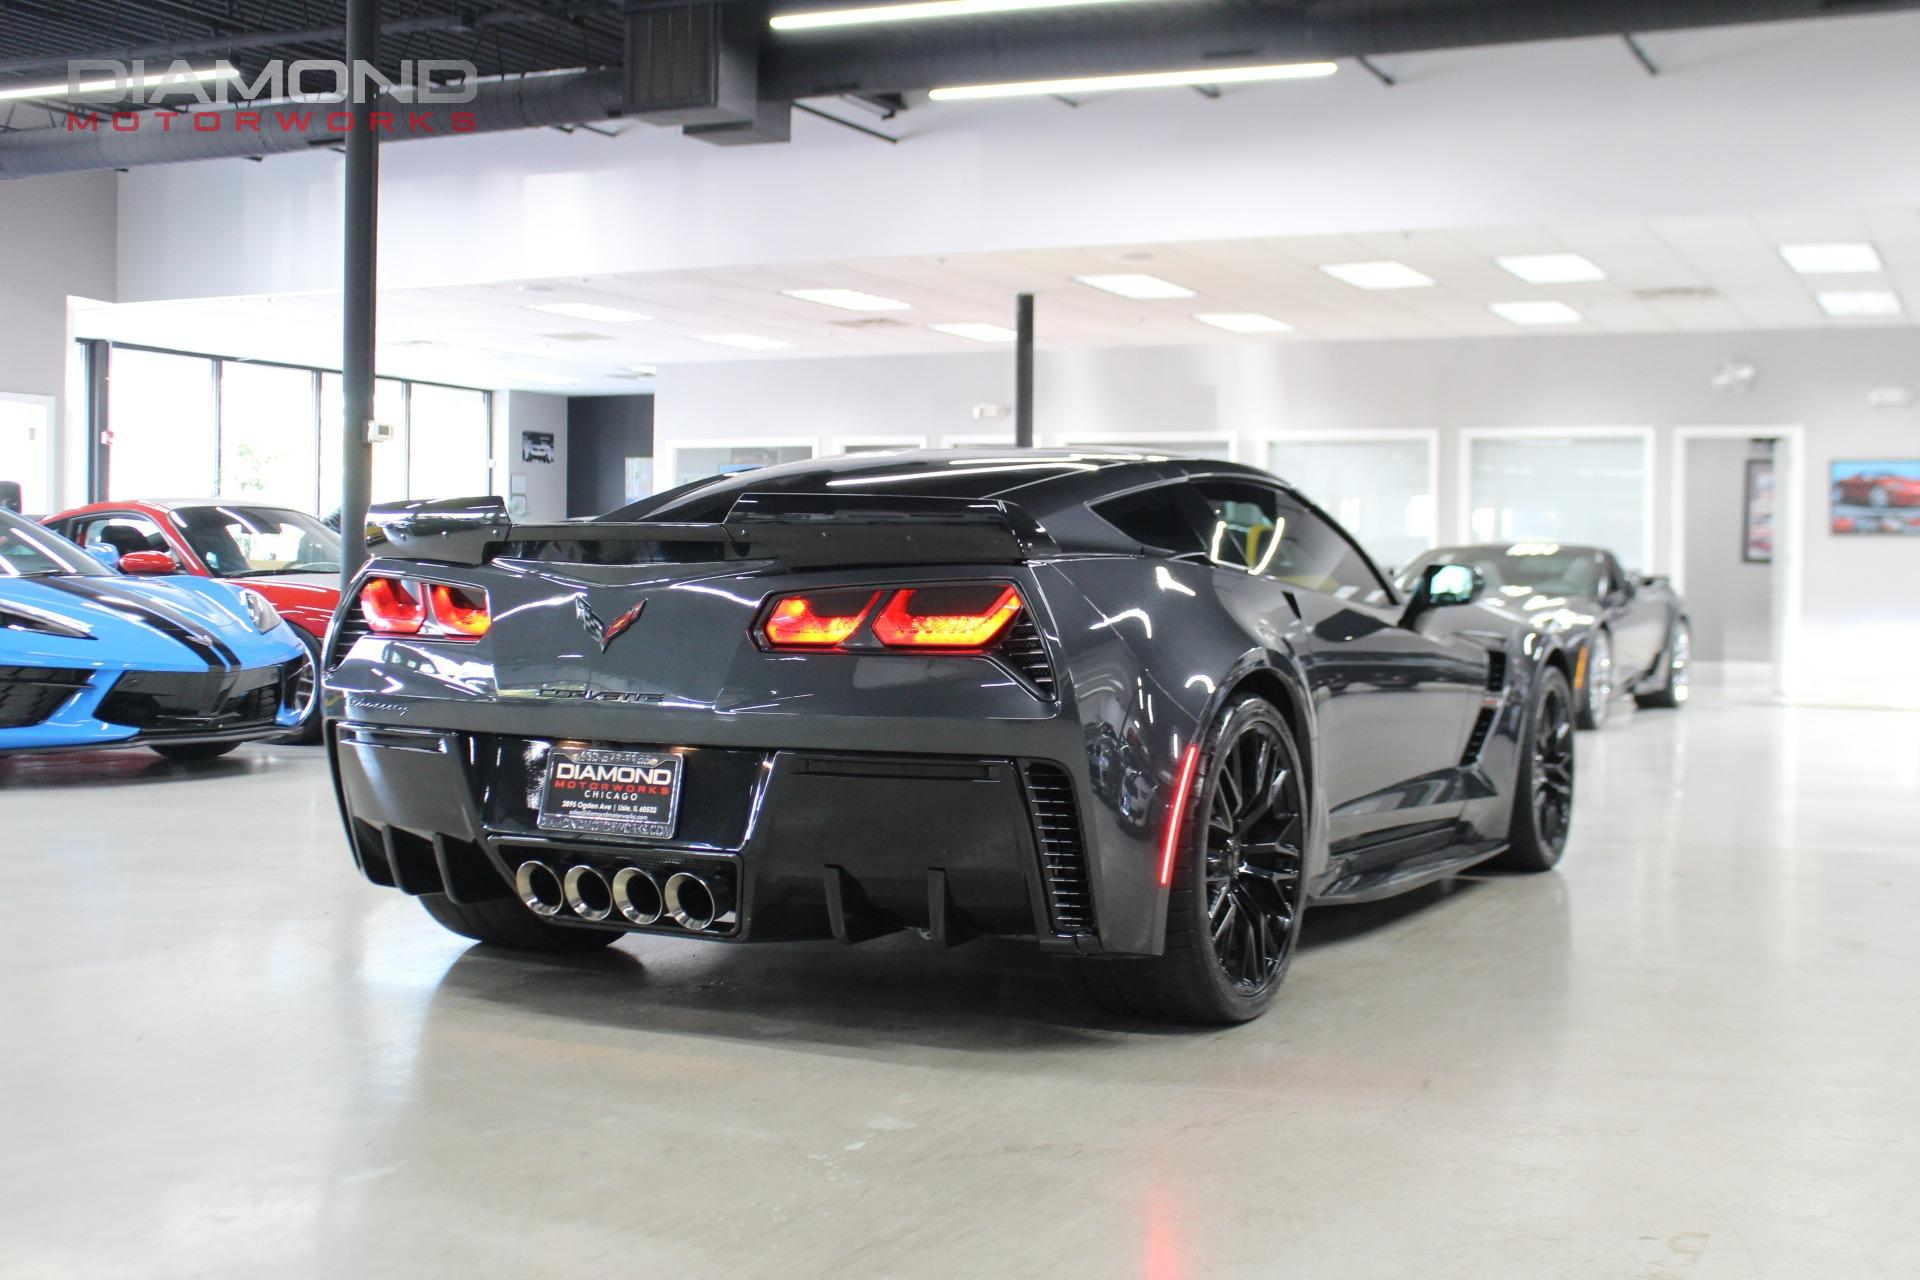 Used-2017-Chevrolet-Corvette-Grand-Sport-Hennessey-Supercharged